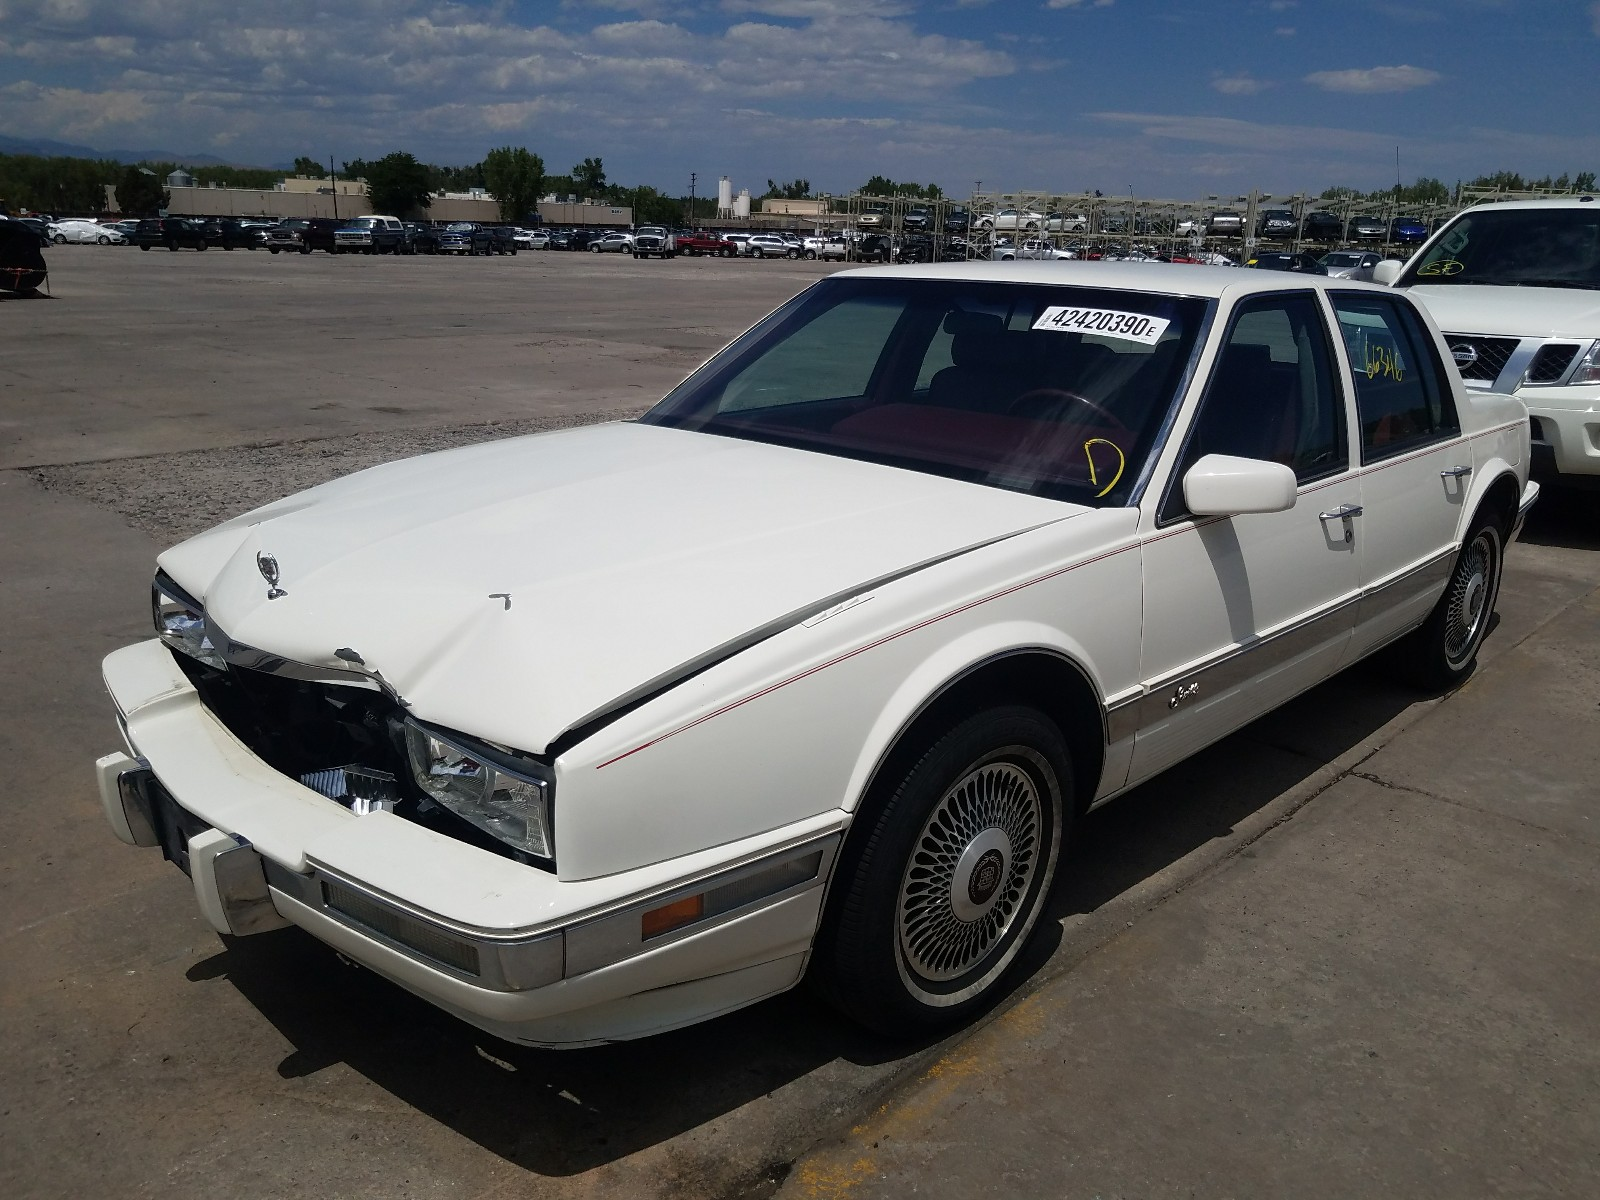 1991 cadillac seville for sale at copart littleton co lot 42420390 salvagereseller com salvagereseller com